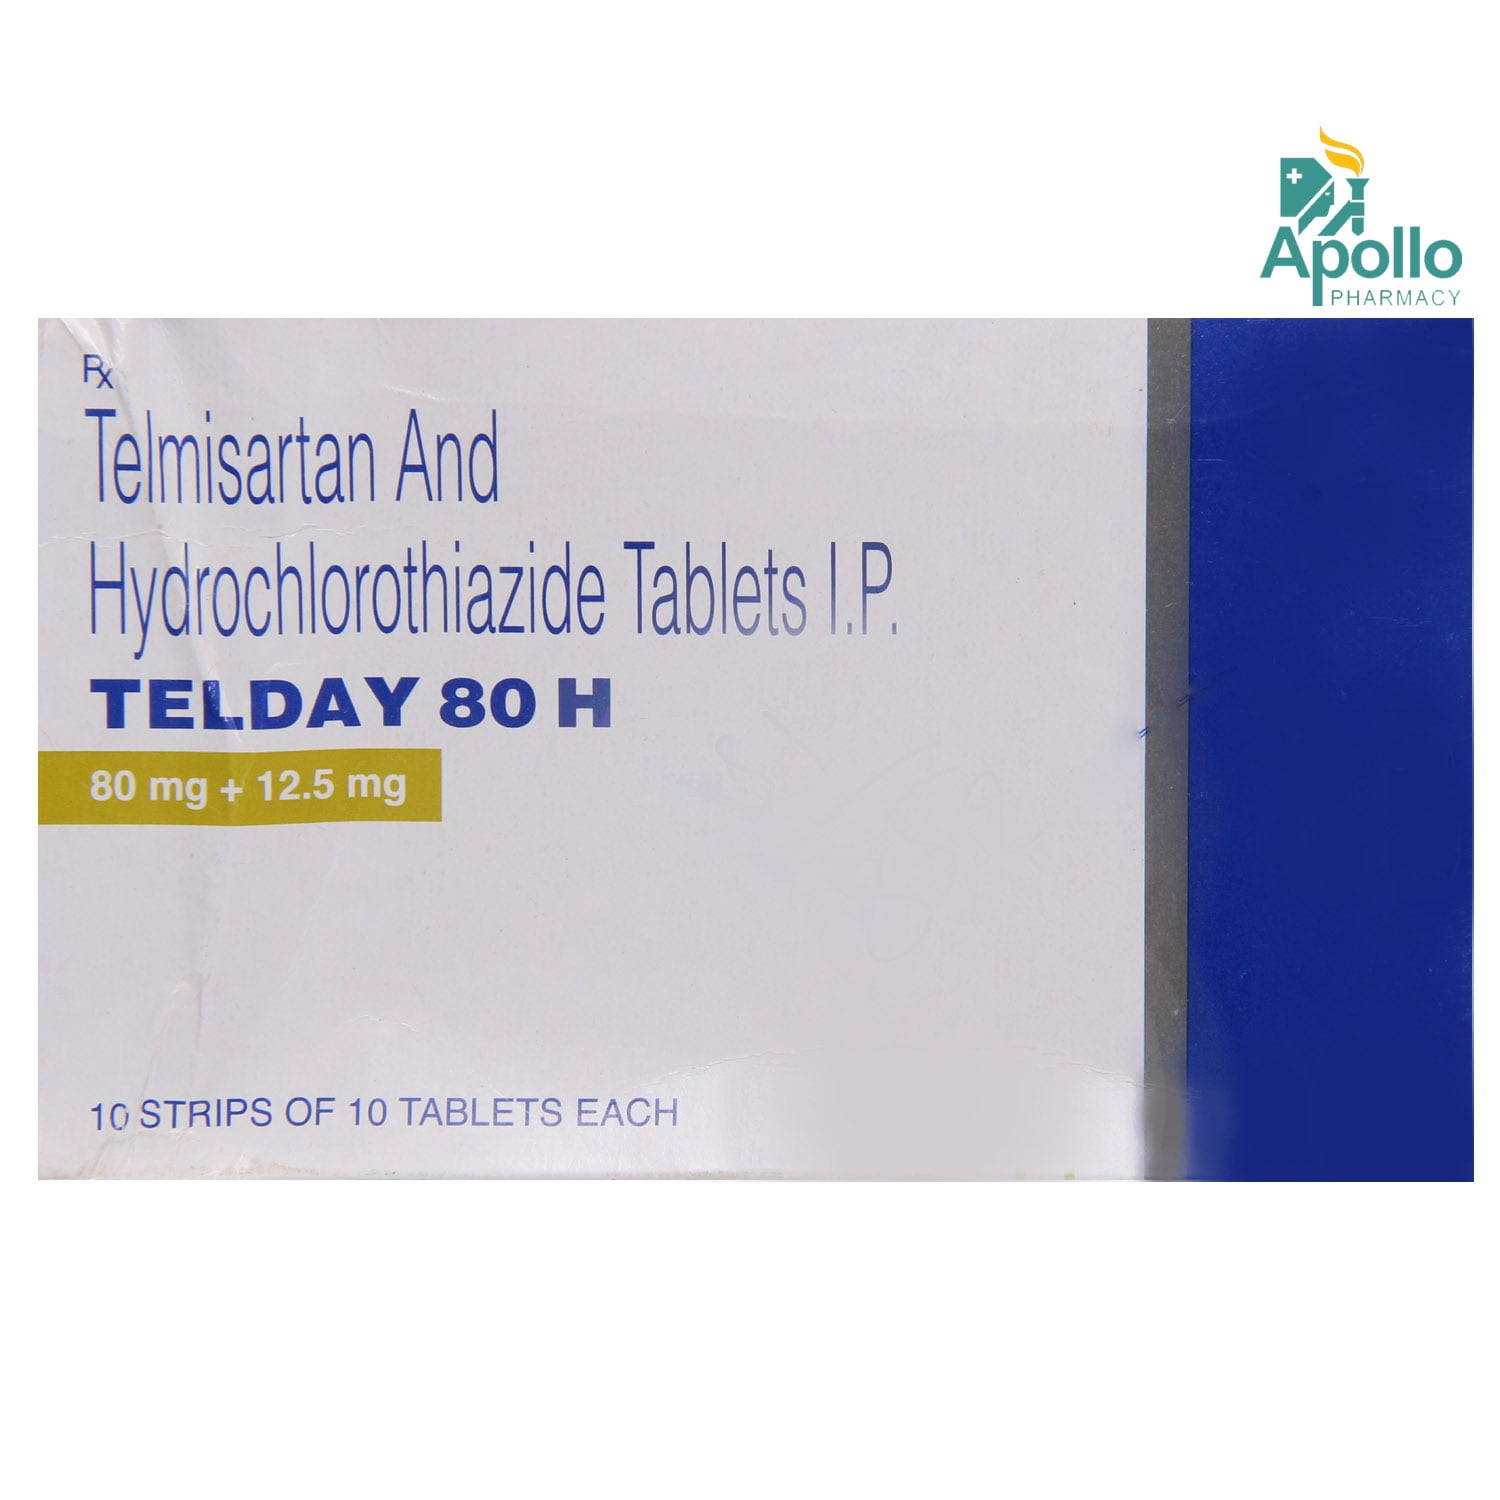 Telday 80 H Tablet 10's